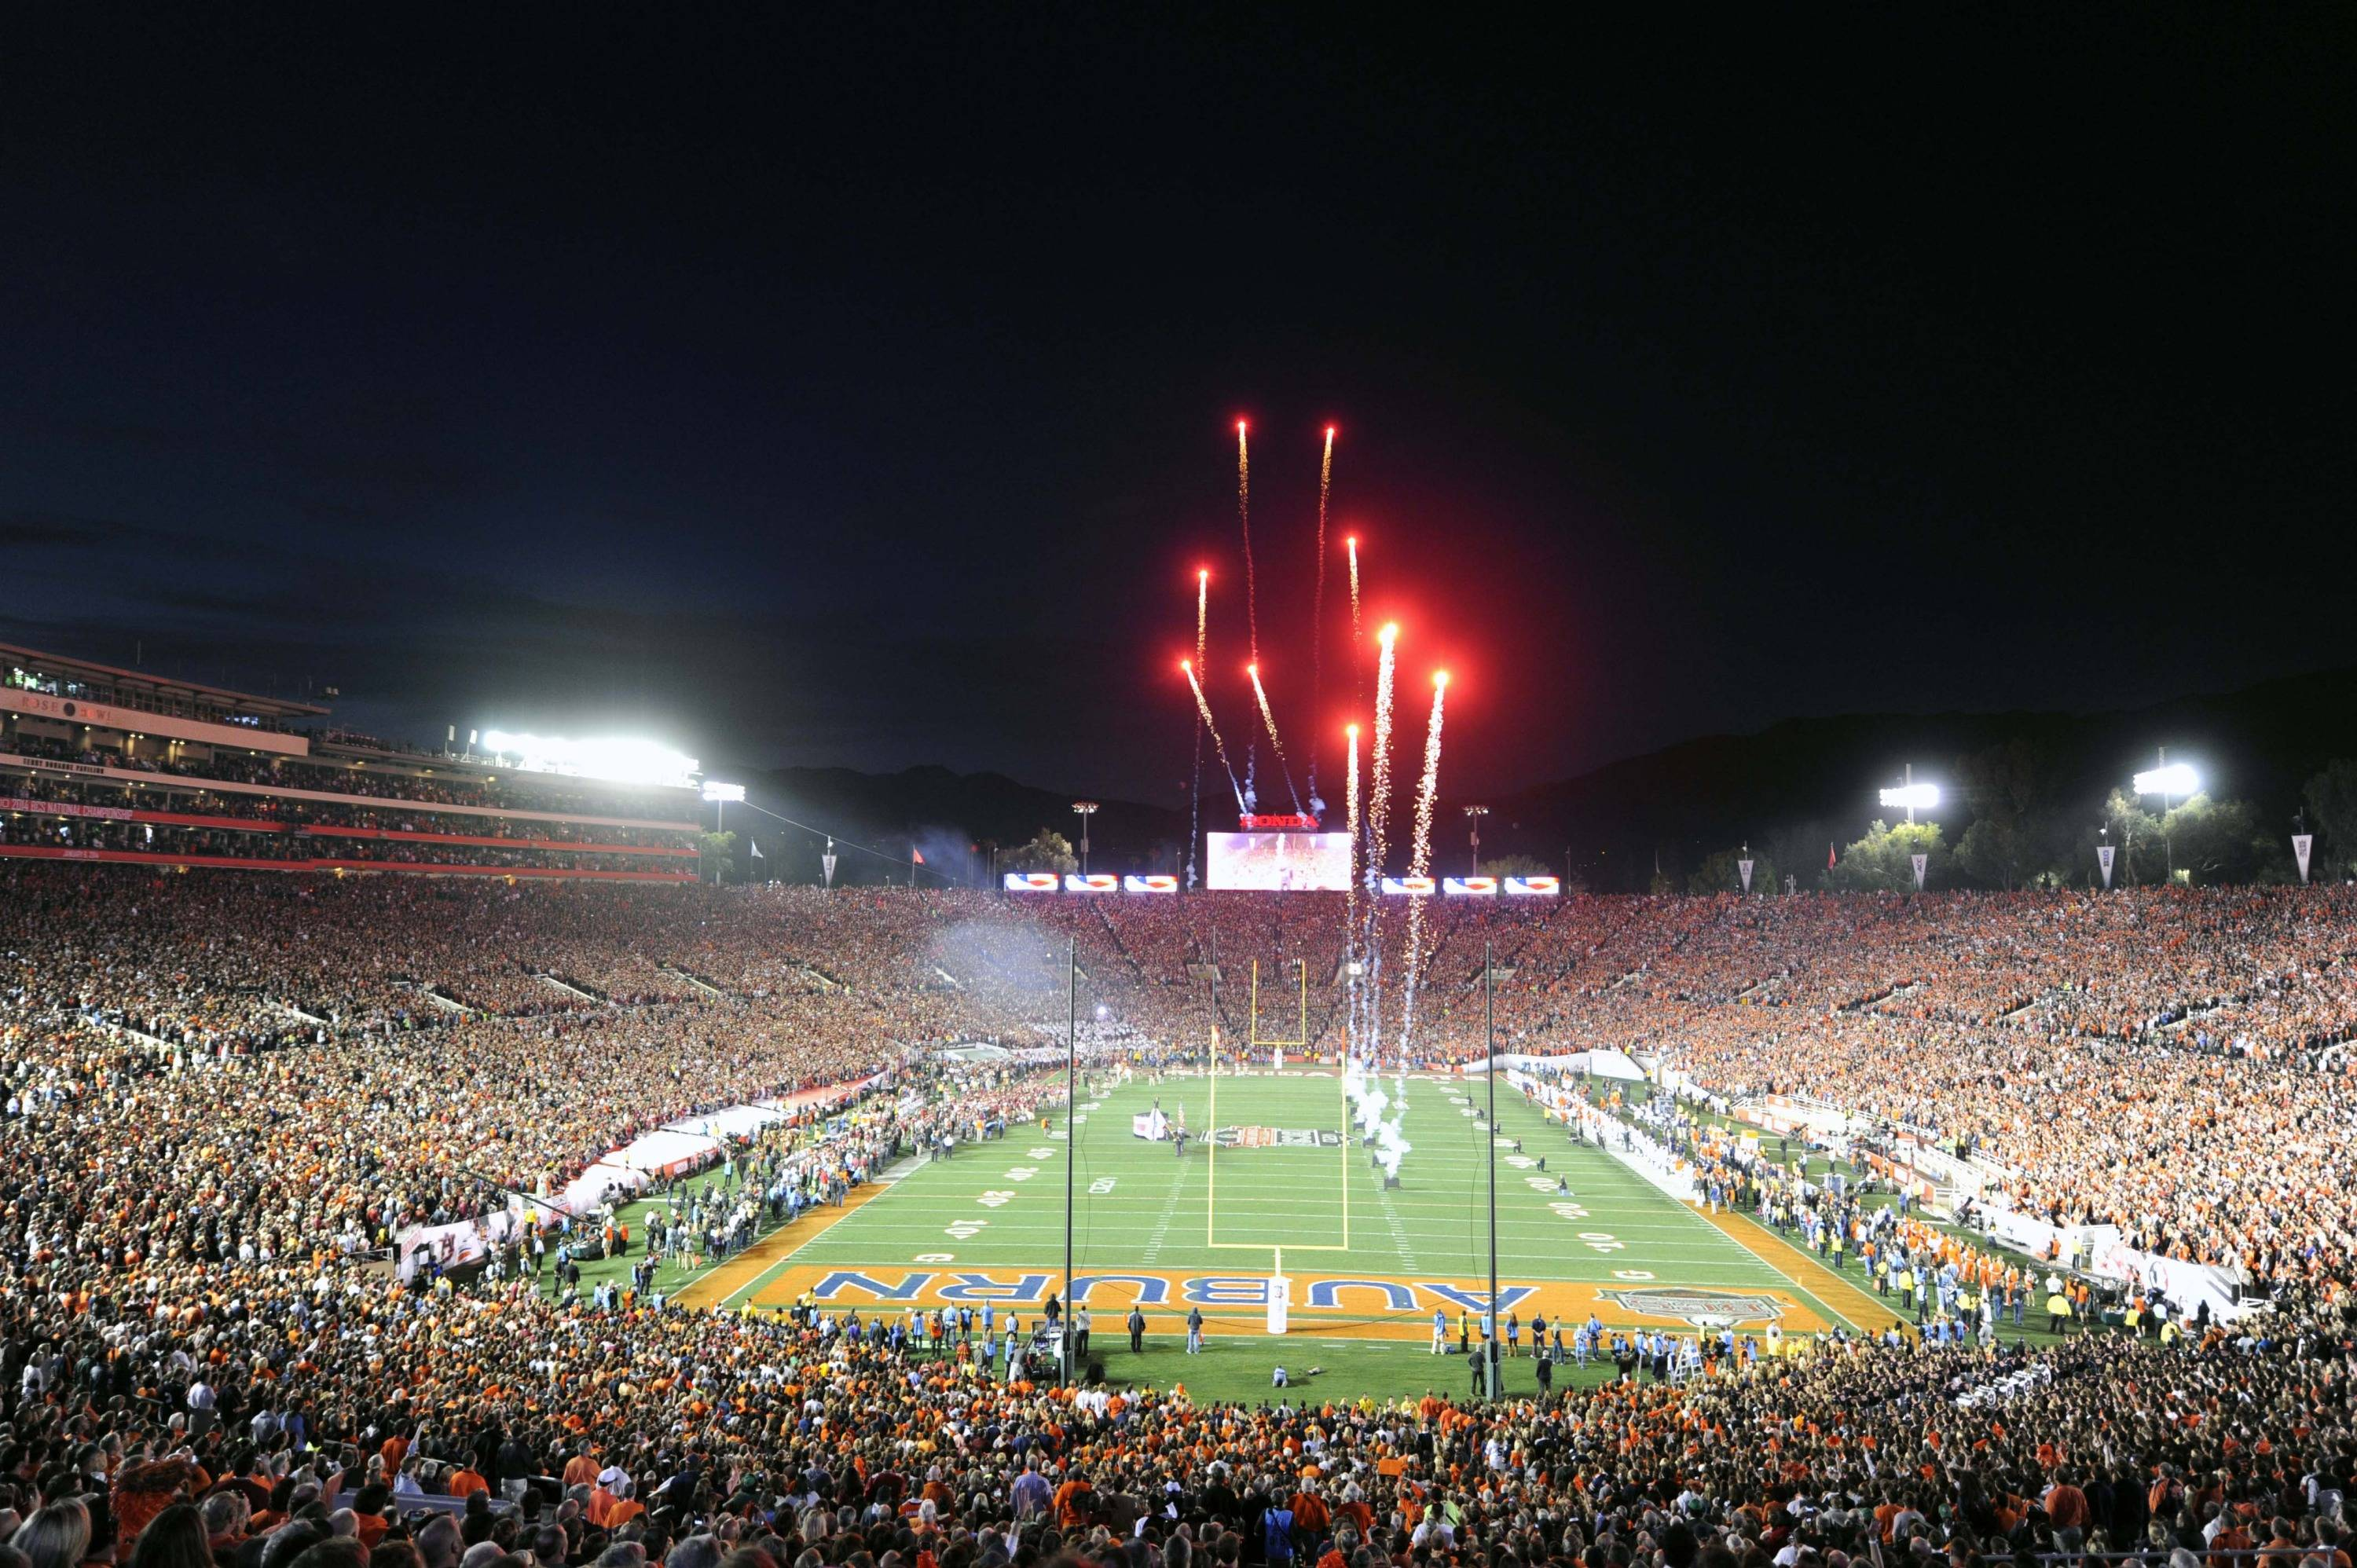 Jan 6, 2014; Pasadena, CA, USA; General view of the Rose Bowl during fireworks before the 2014 BCS National Championship game between the Auburn Tigers and the Florida State Seminoles.  Mandatory Credit: Kirby Lee-USA TODAY Sports